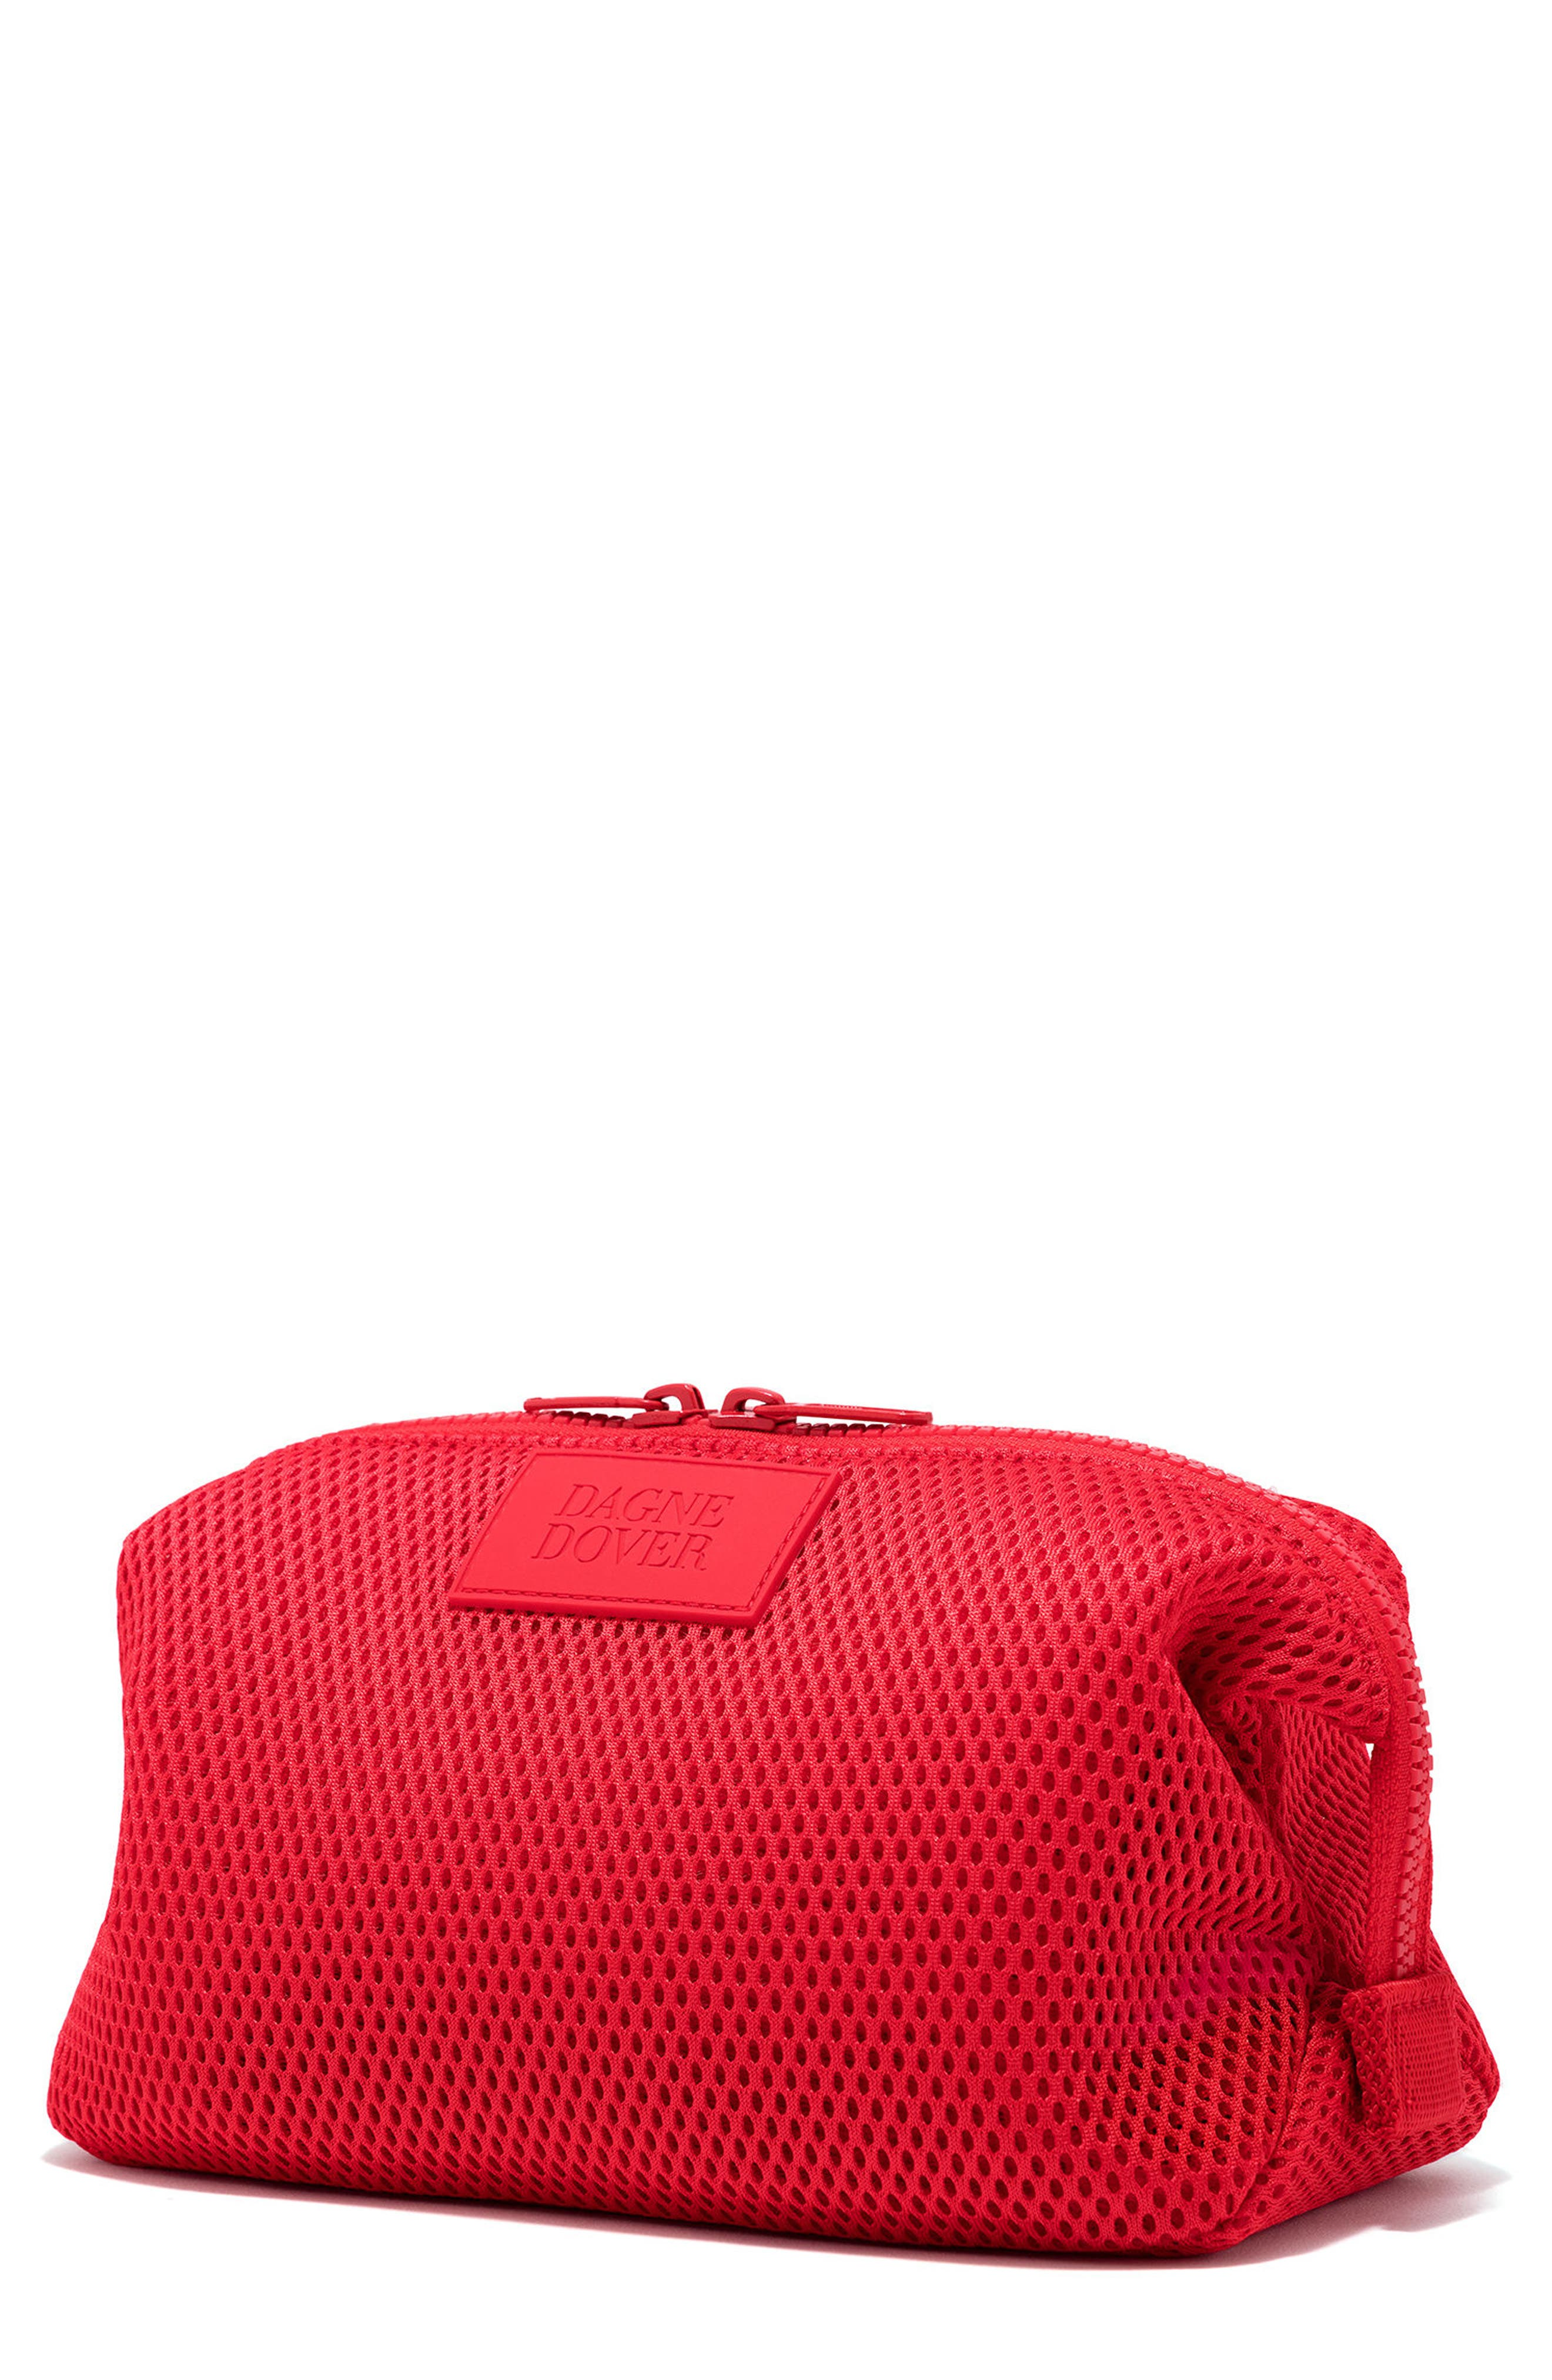 Large Hunter Neoprene Toiletry Bag,                         Main,                         color, Poppy Air Mesh